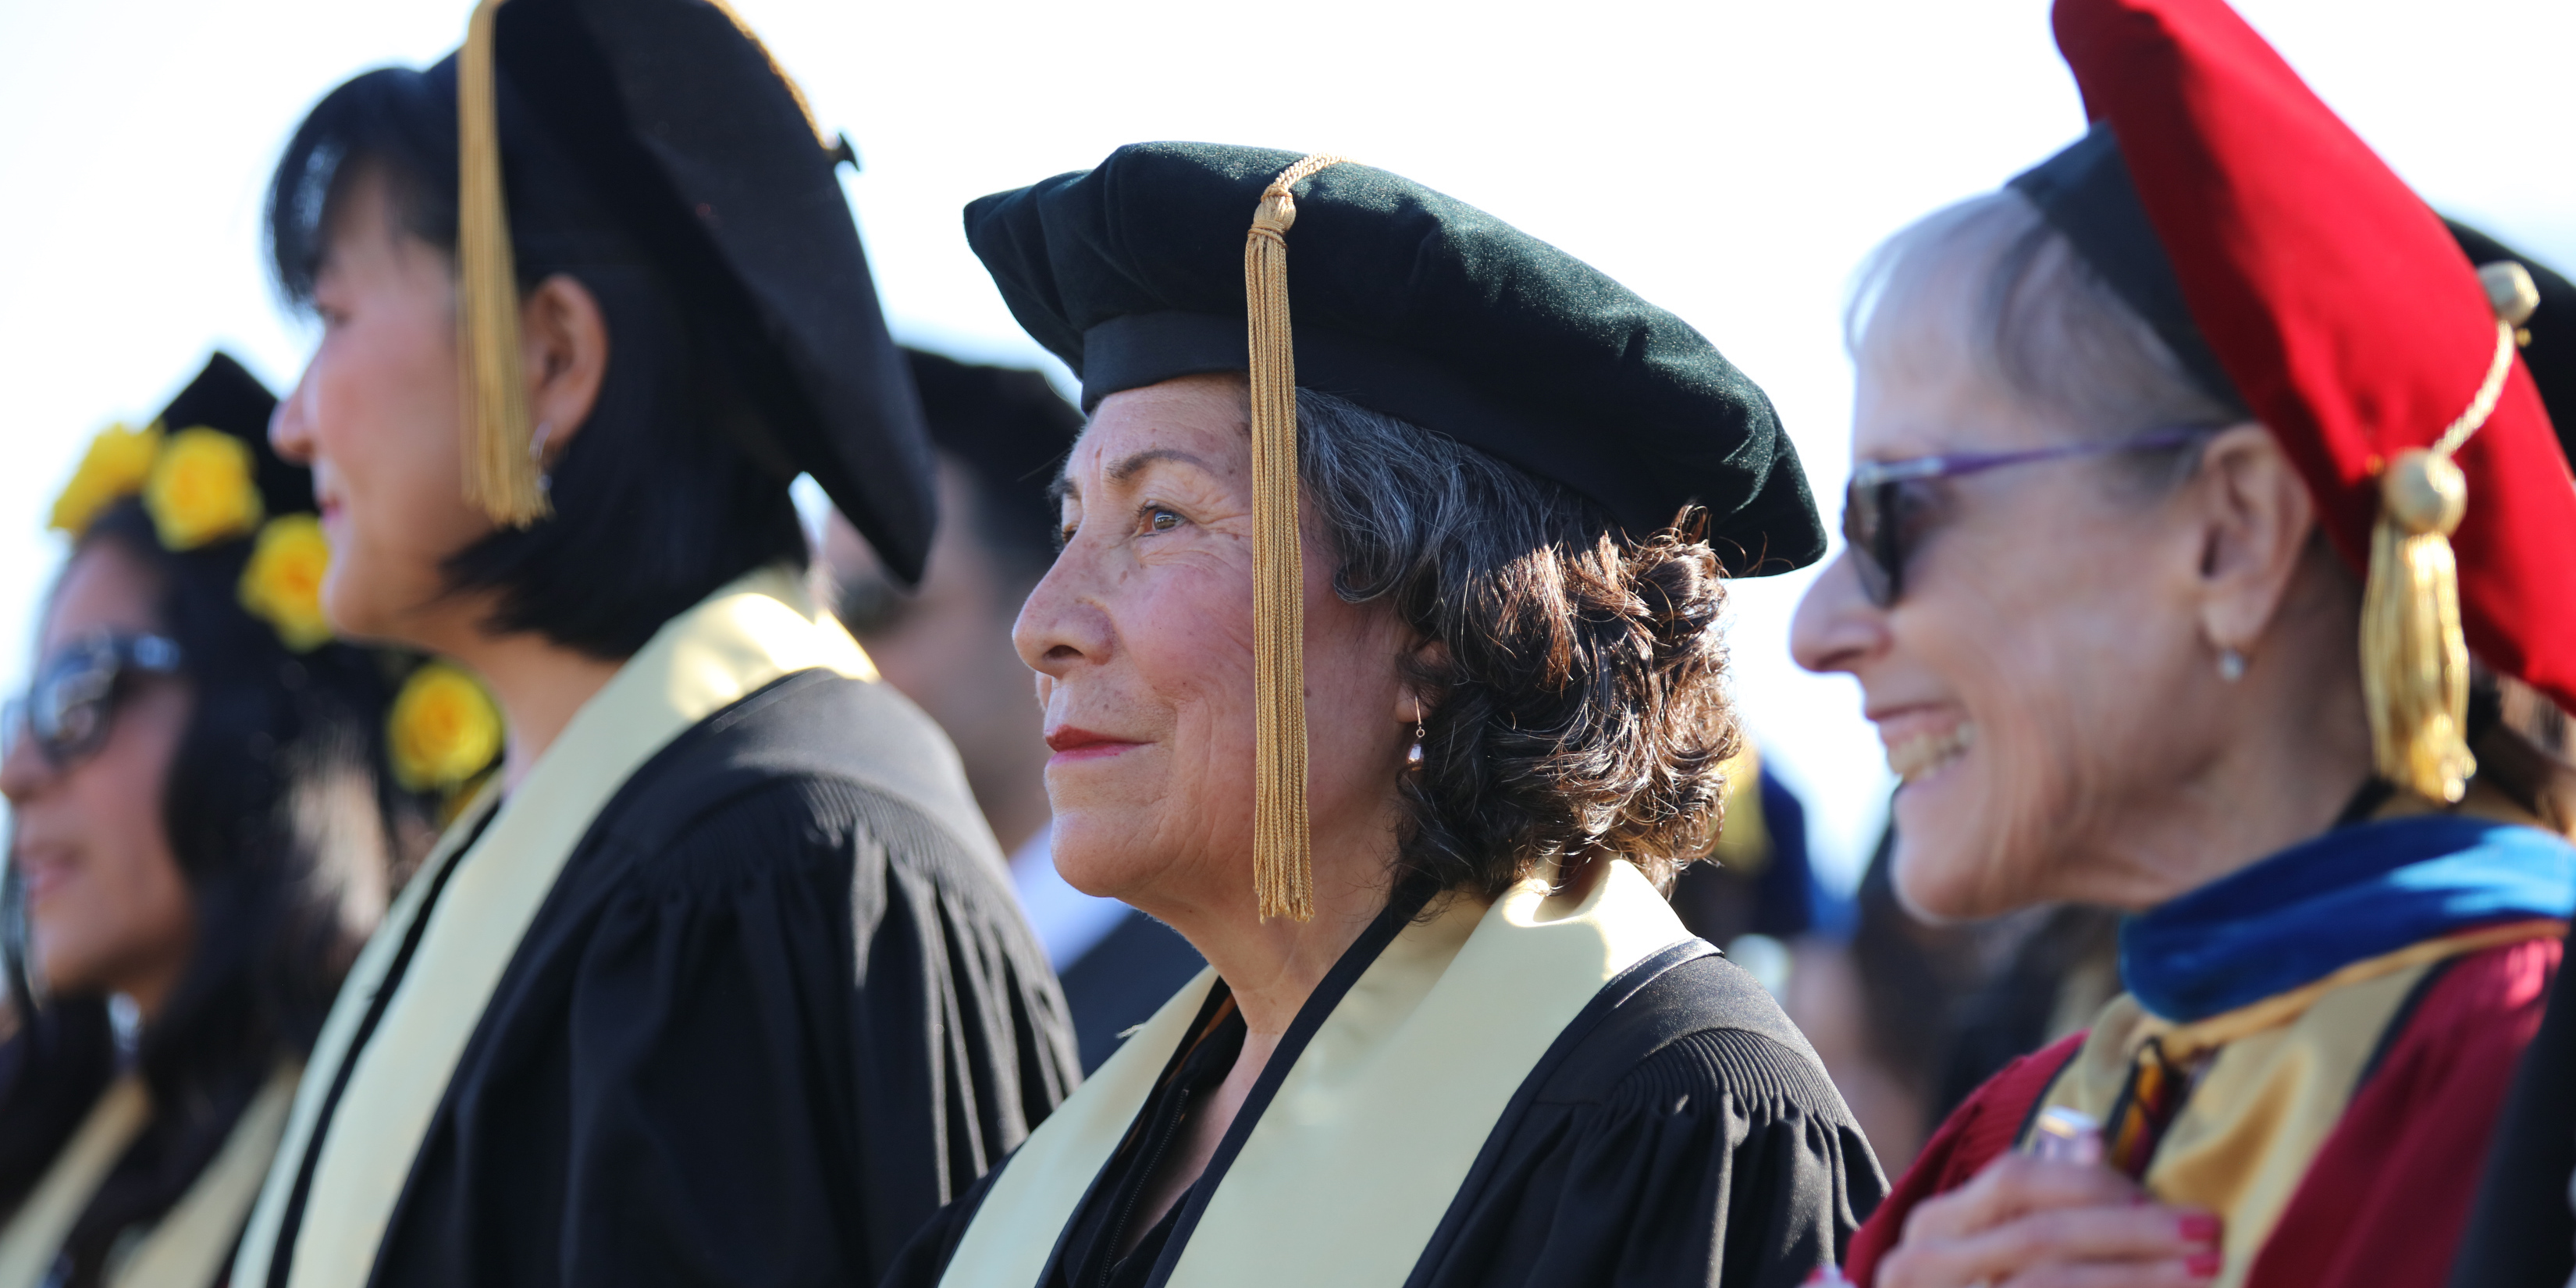 Doctoral student between faculty at commencement, all wearing robes, hoods, and tams